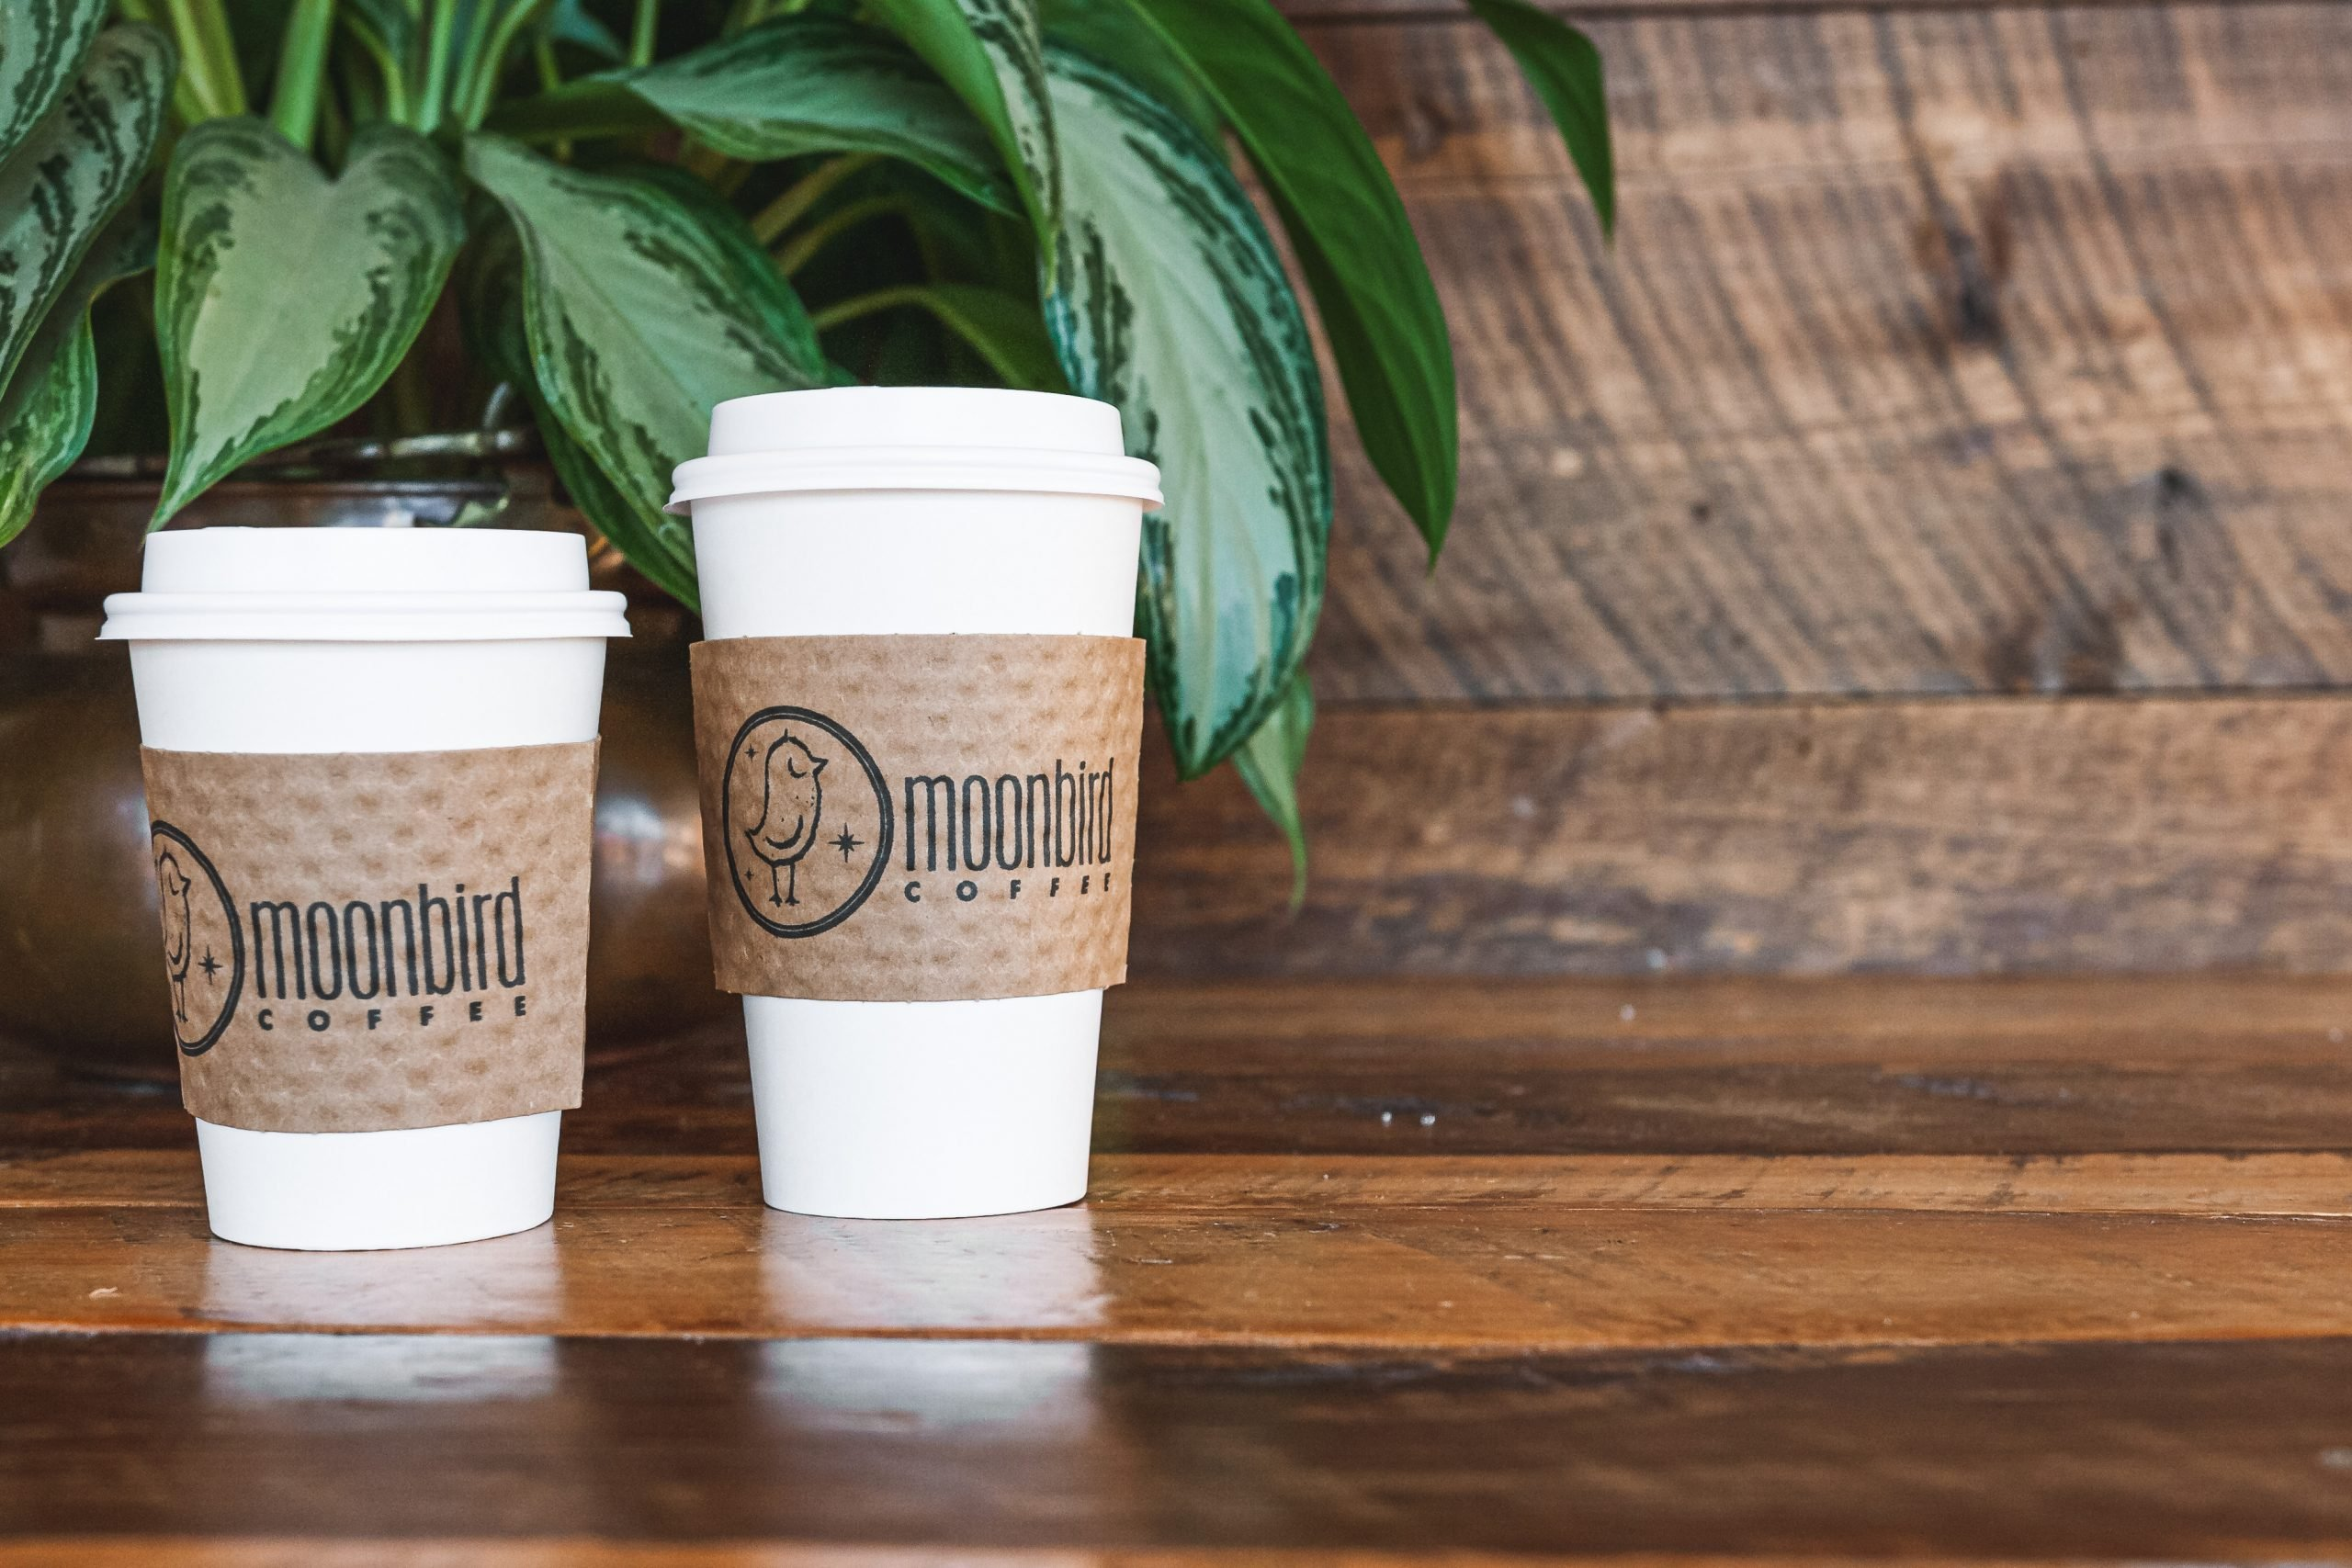 Picture of two to-go coffees on a wooden table with a plant in the background